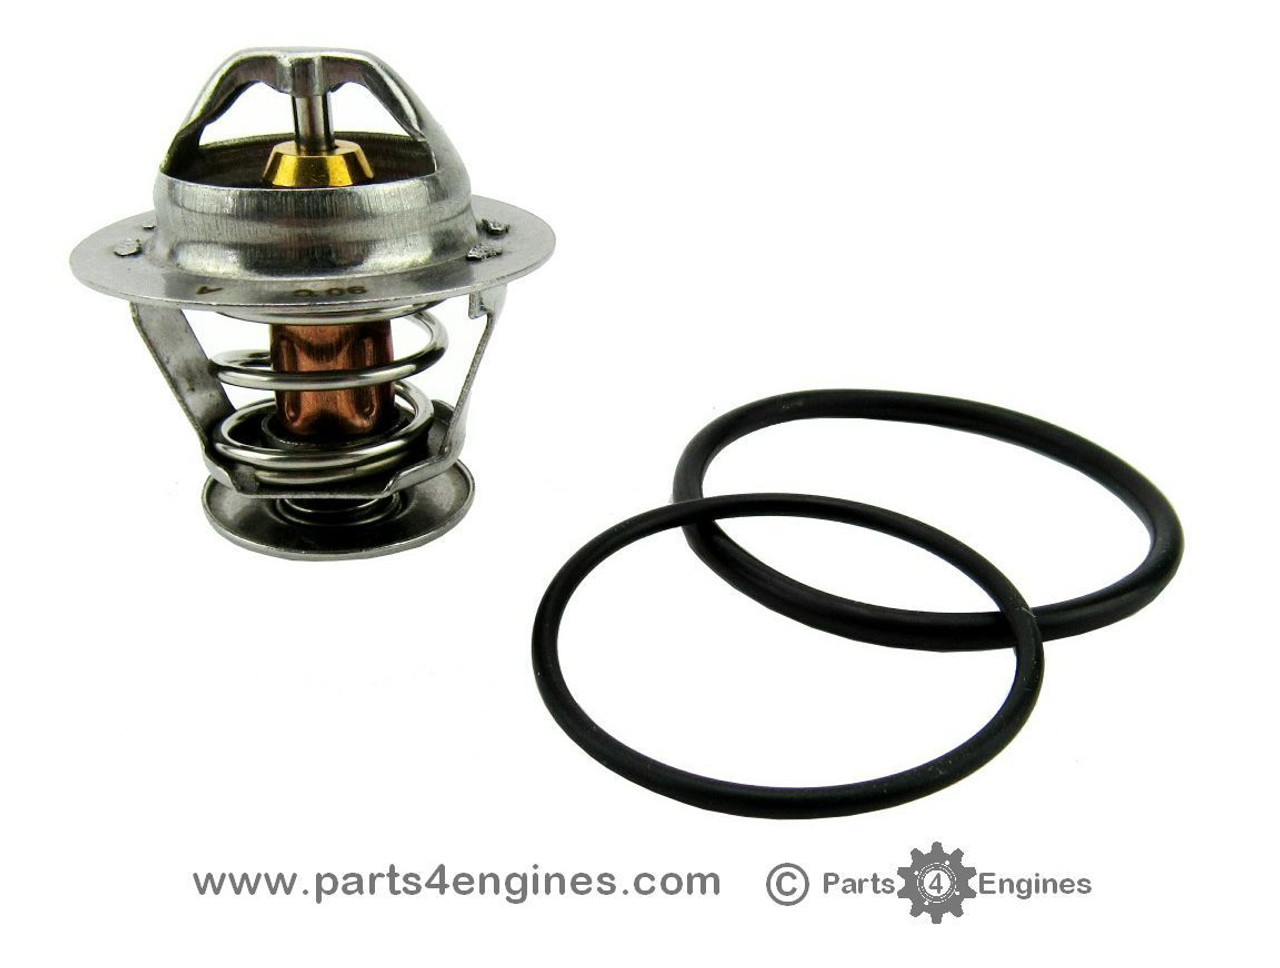 Volvo Penta D2-55 thermostat from Parts4Engines.com